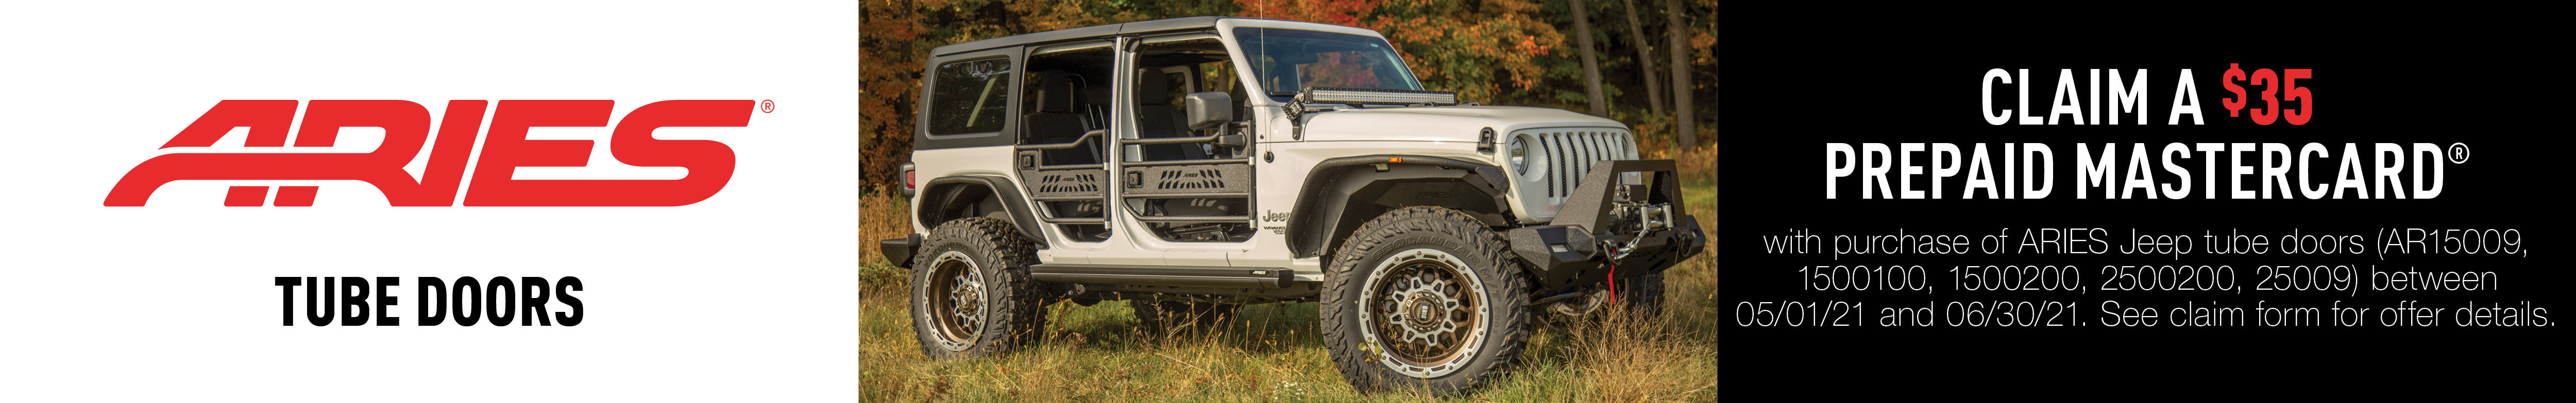 Claim a $35 prepaid Mastercard with purchase of Aries Jeep Tube Doors between 5/1/21 and 6/30/21 See Claim for offer details